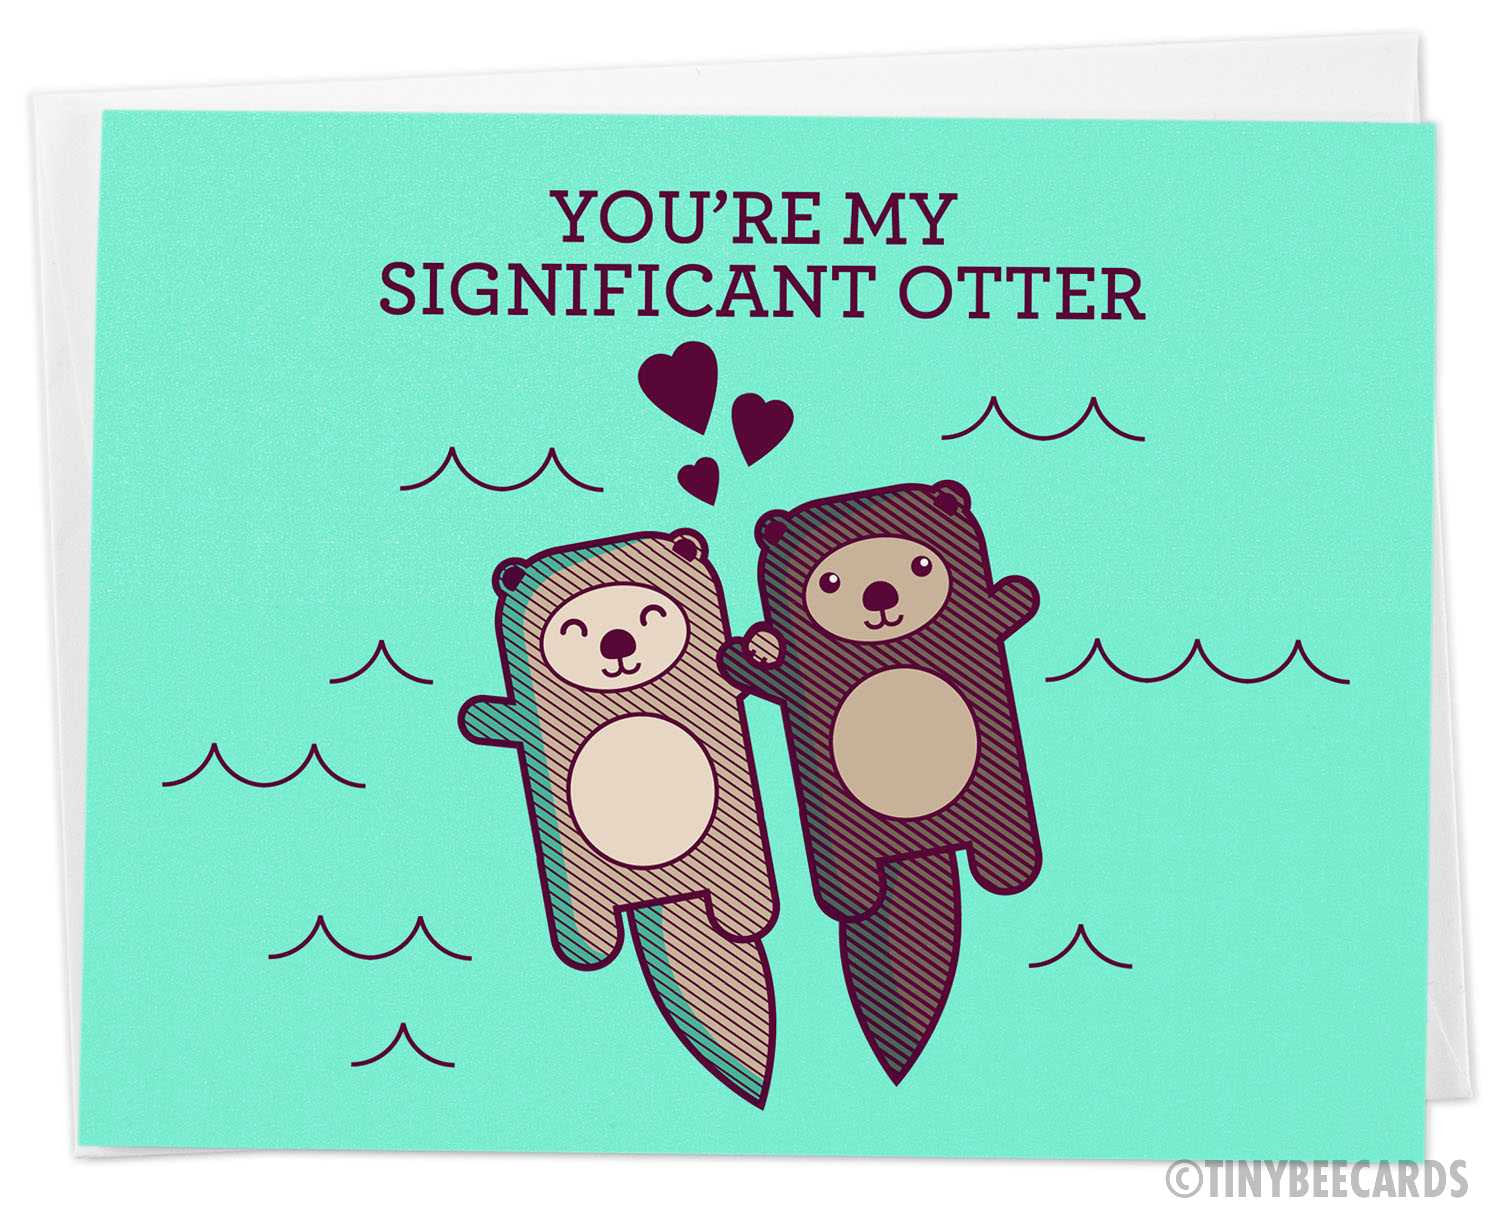 Cute Card 'You're My Significant Otter'